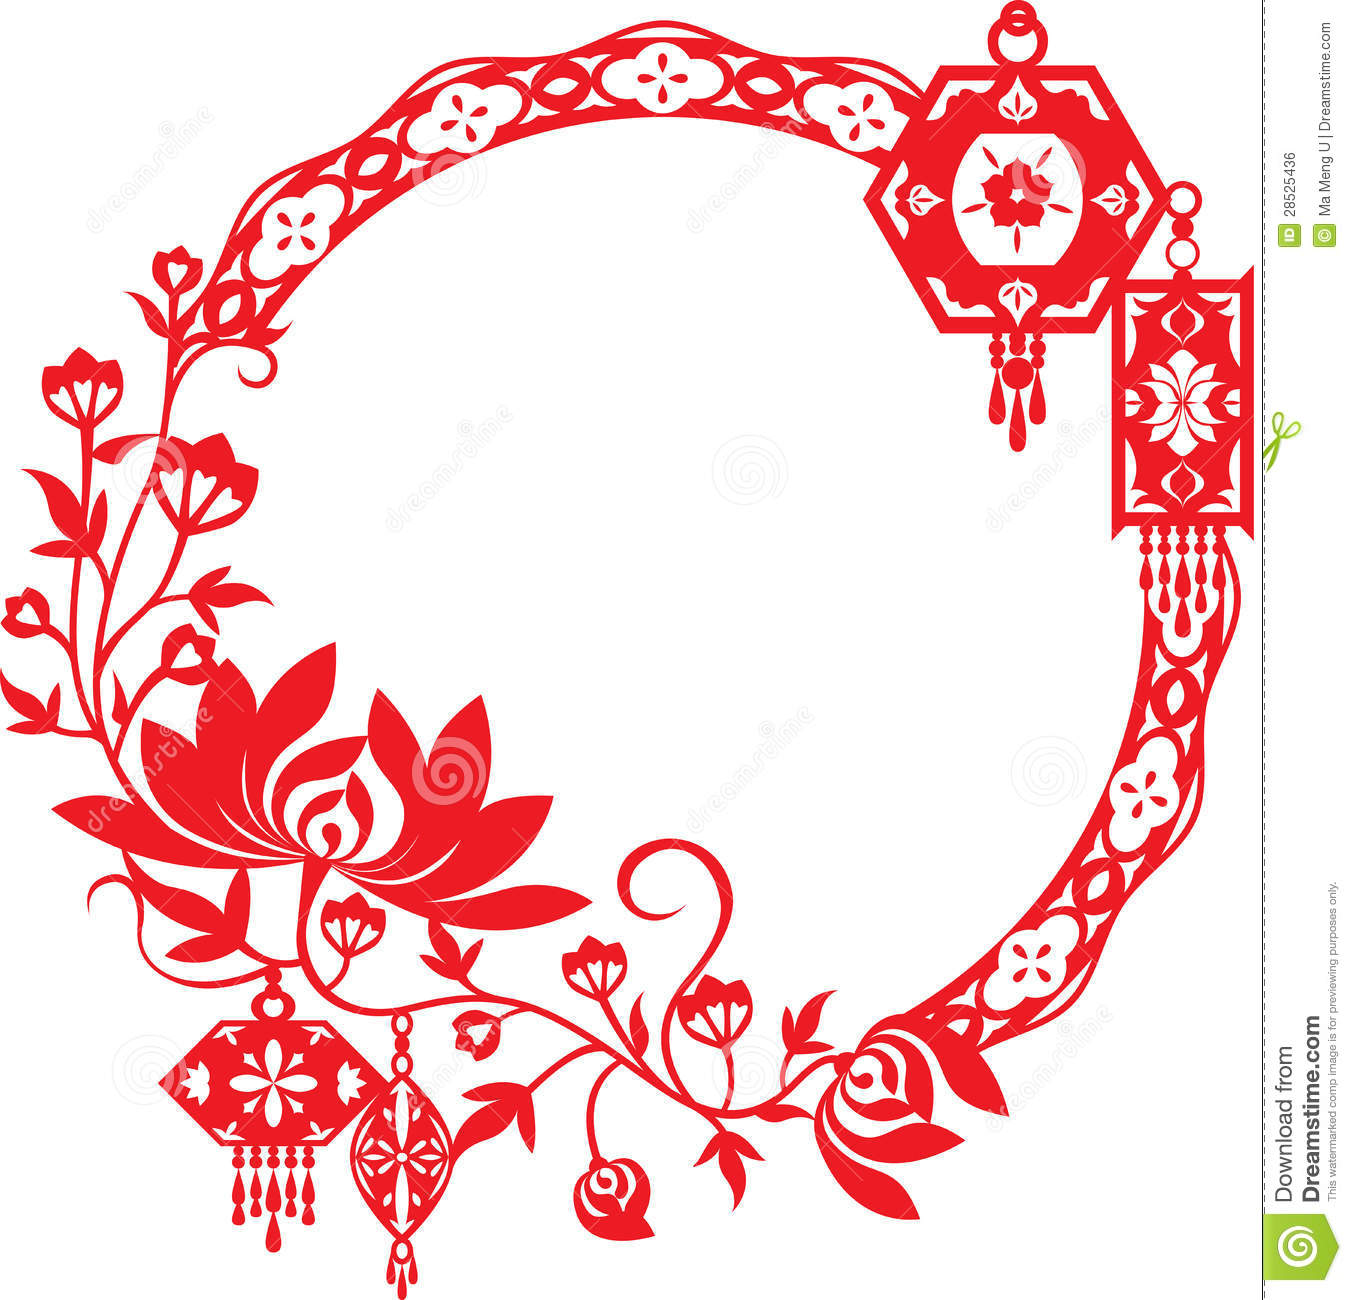 New Years Border Clipart | Free download best New Years Border ...